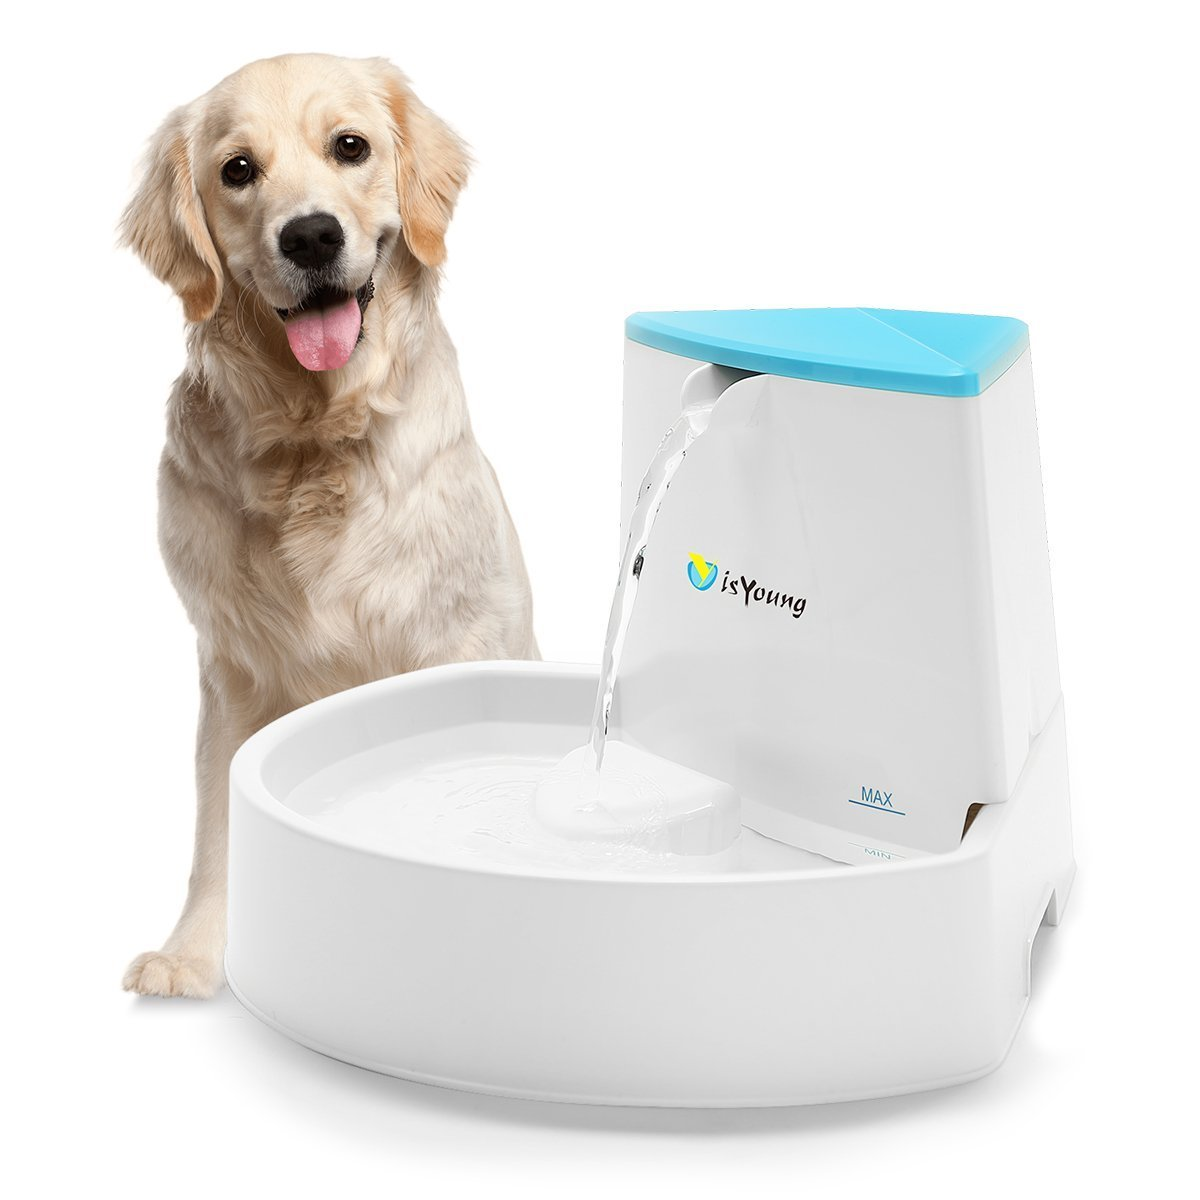 isYoung Pet Fountain for Cats and Dogs, Cat Fountain Automatic Water Dispenser, Healthy and Hygienic Dog Fountain